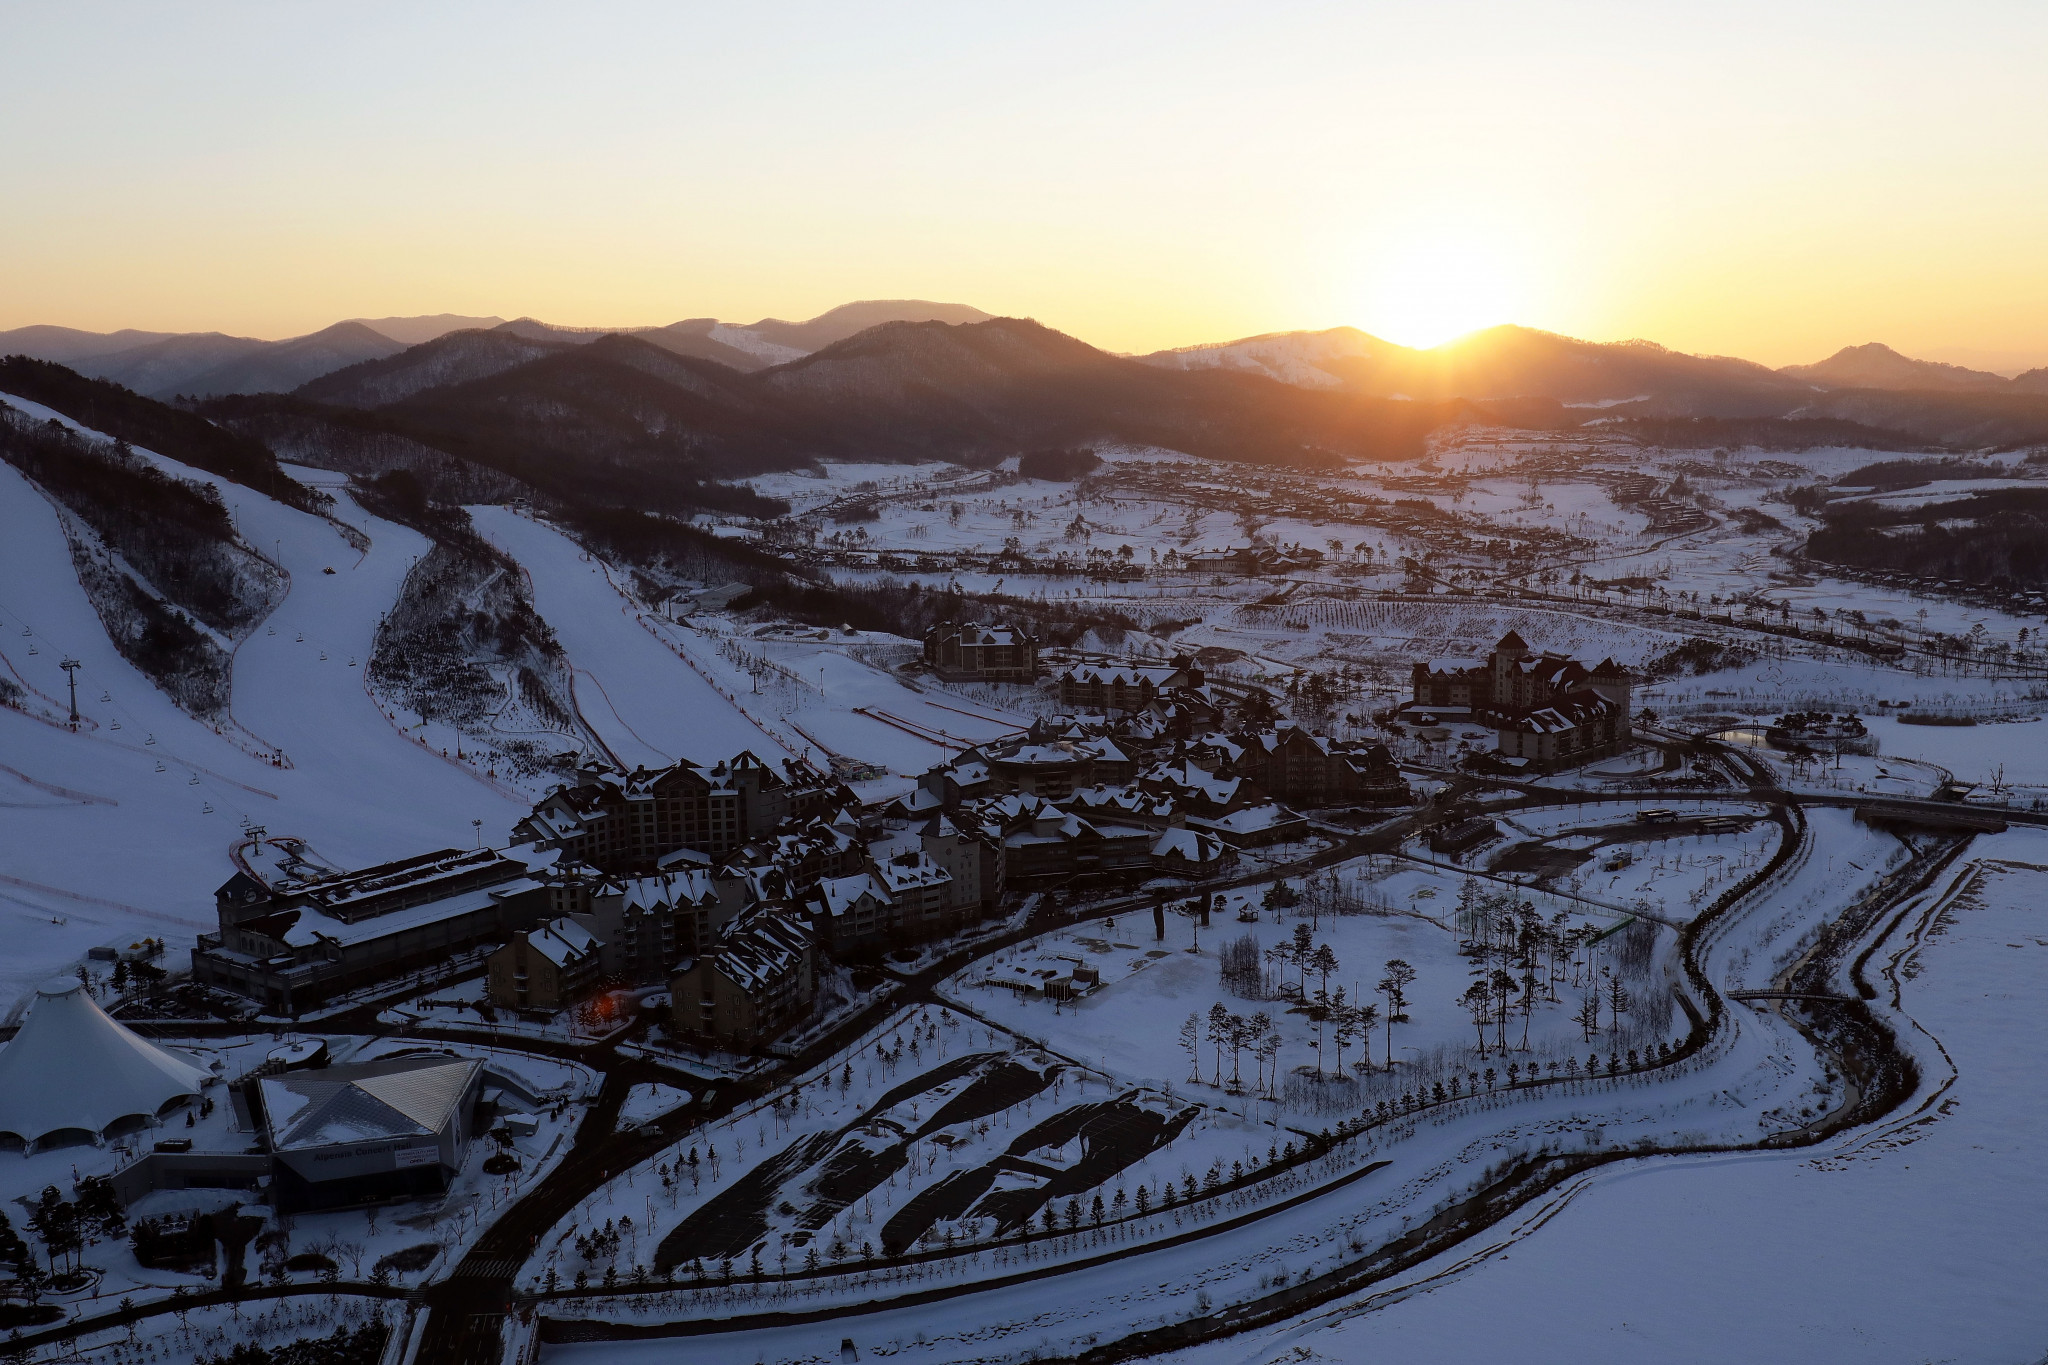 Contingency plans for heavy snow during the Pyeongchang 2018 Winter Olympic Games will be prepared by an inter-agency taskforce ©Getty Images